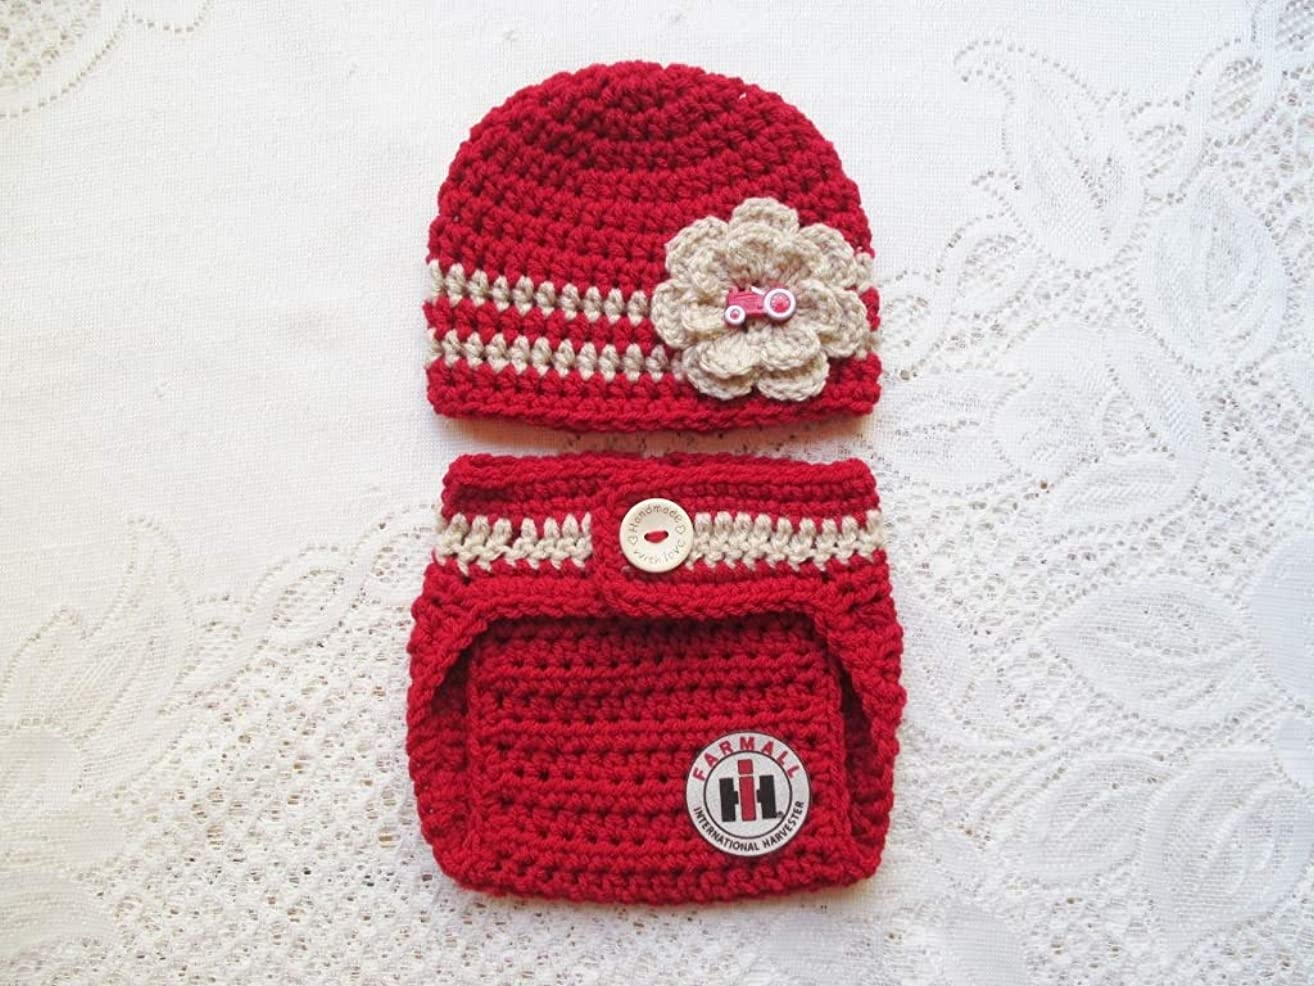 Crochet Baby International Harvester - Farmall Hat and Diaper Cover Set - Baby Photo Prop - Baby Shower Gift - Available in 0 to 6 Months